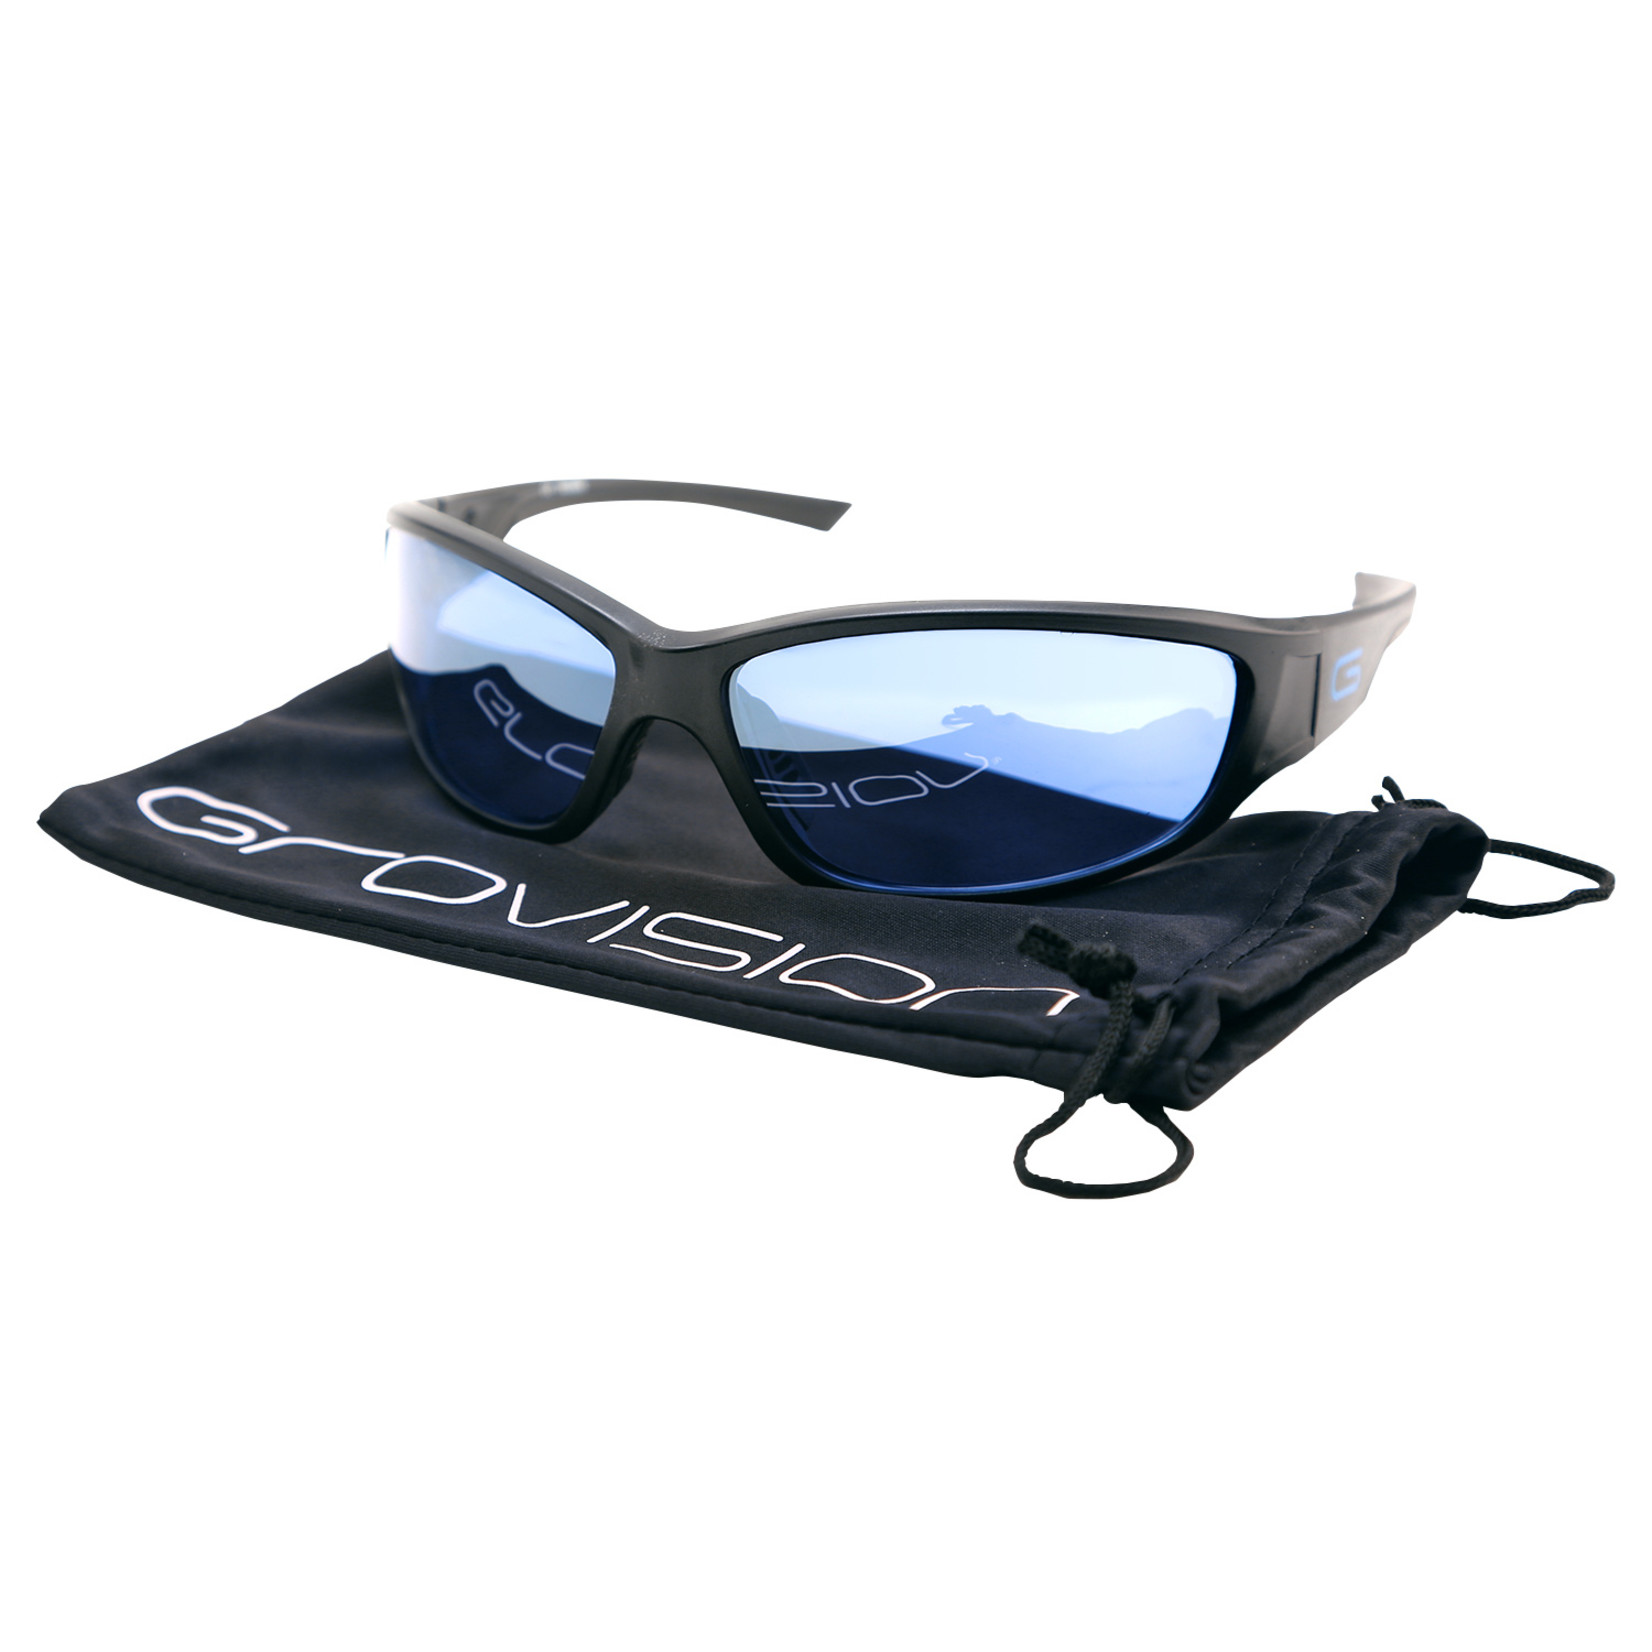 grovision GroVision High Performance Shades - Pro for HPS